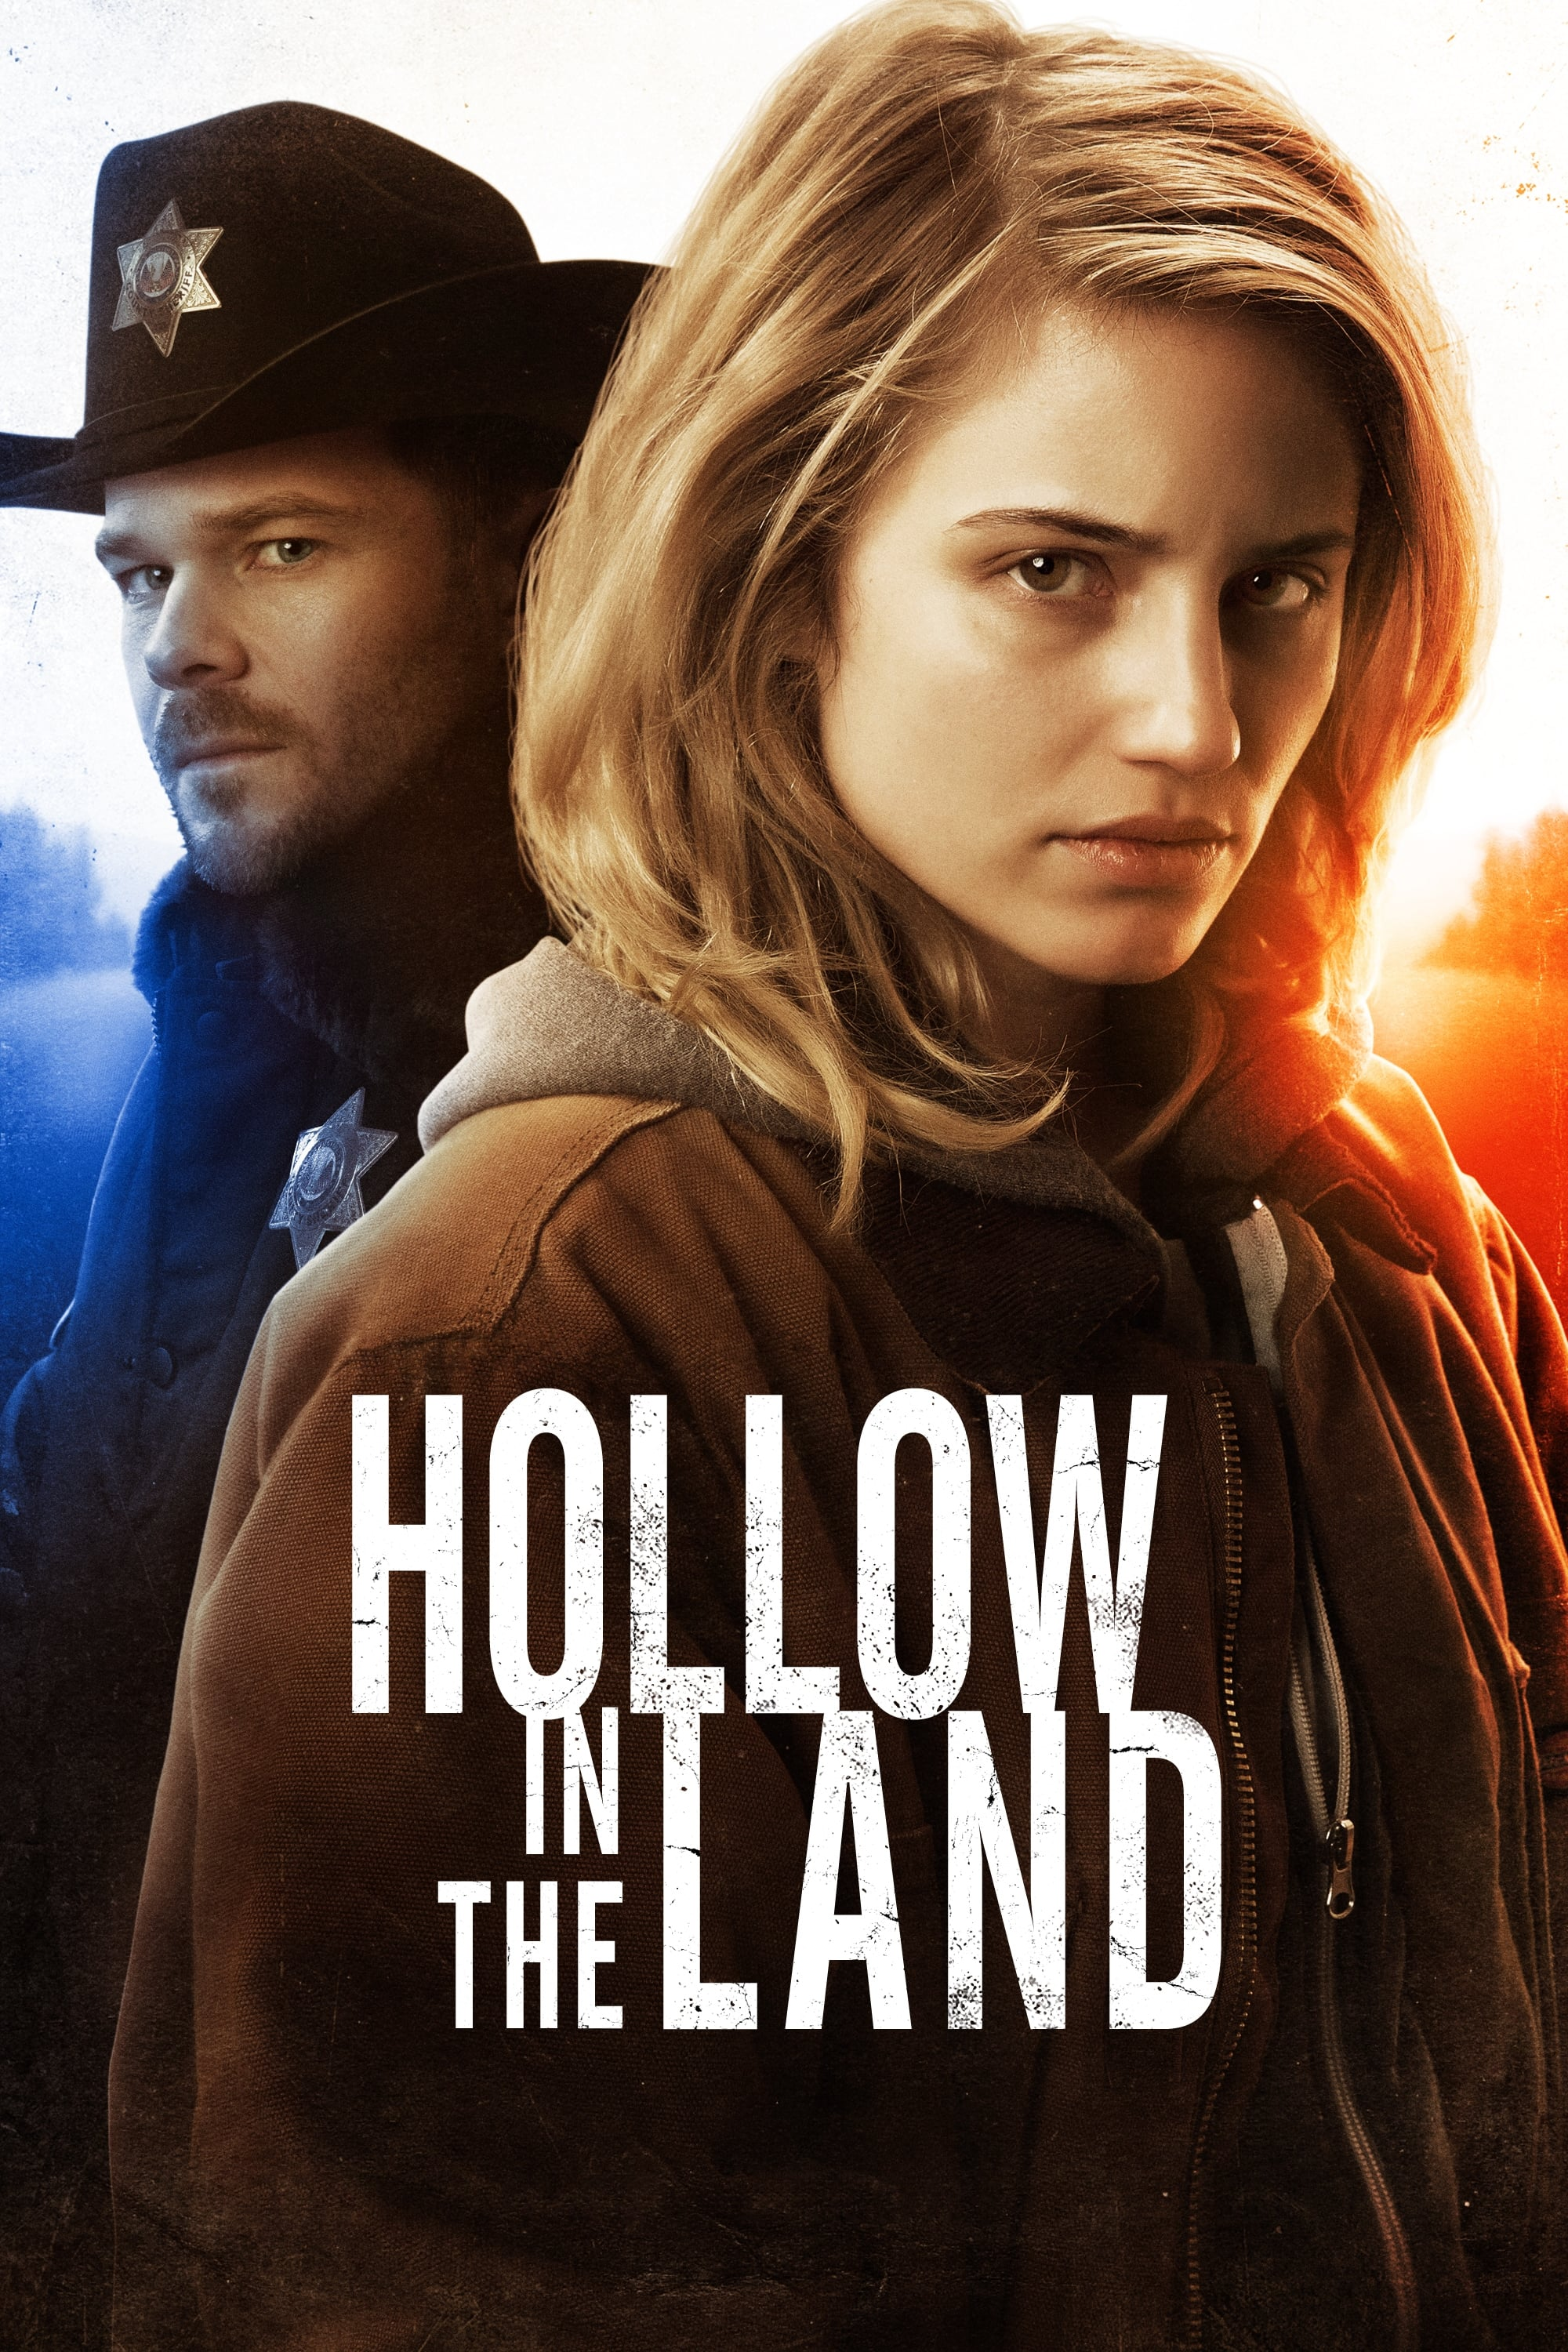 Hollow in the Land (Tierra de sospecha)